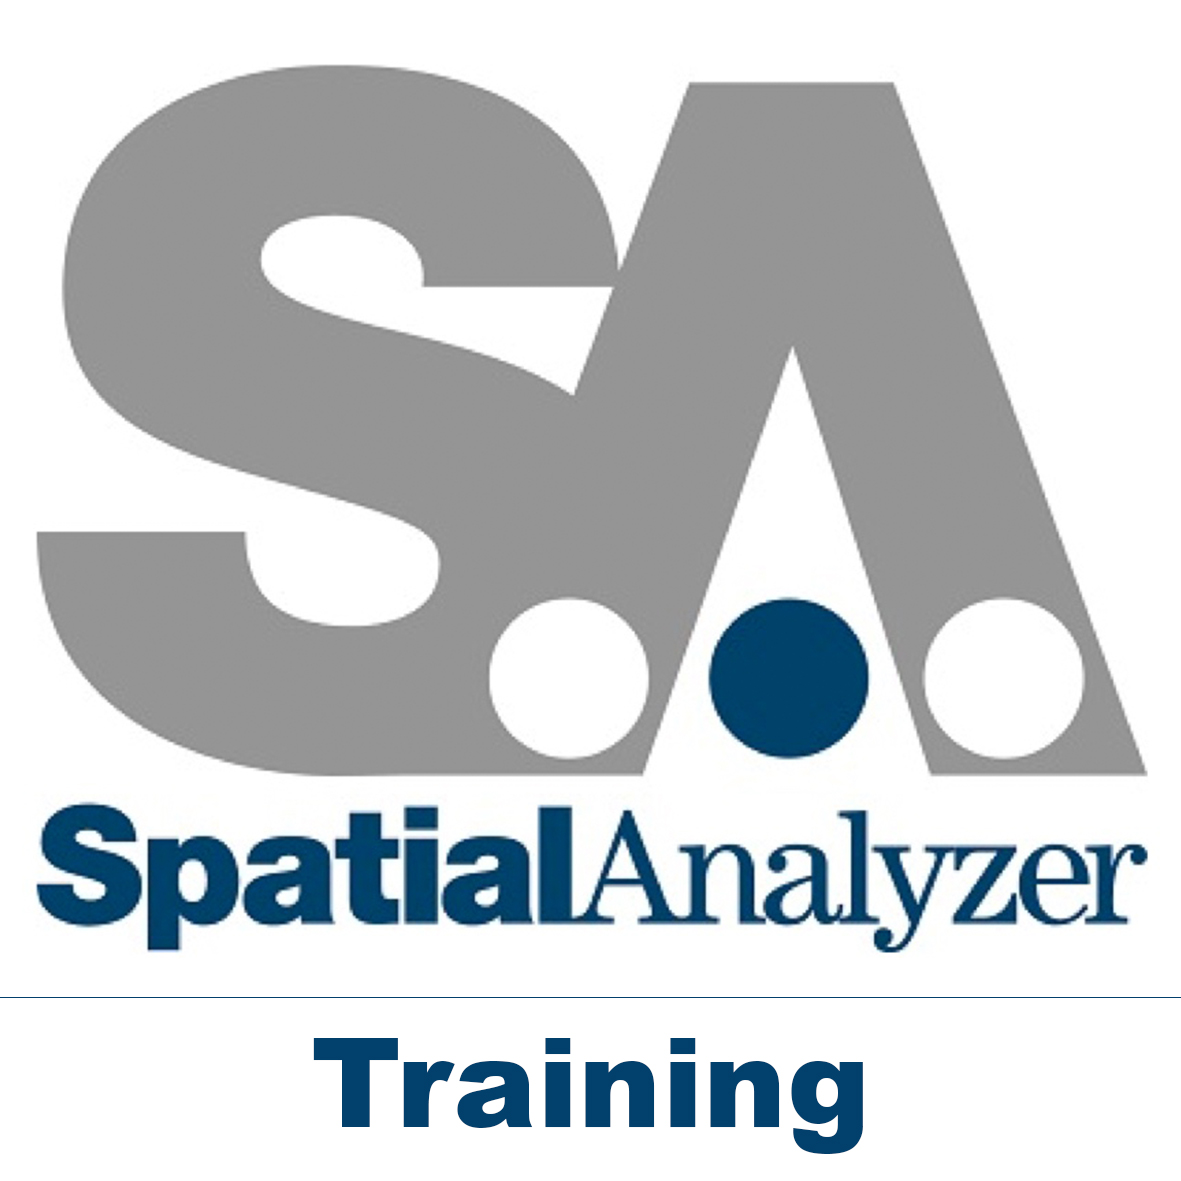 SpatialAnalyzer Training   We are the UK's approved deliverers of training for SpatialAnalyzer software. We provide both a three day introduction for new users as well as advanced training for experienced operators. This can be combined with good practice training for Laser Trackers if applicable.   Contact Us For More Information